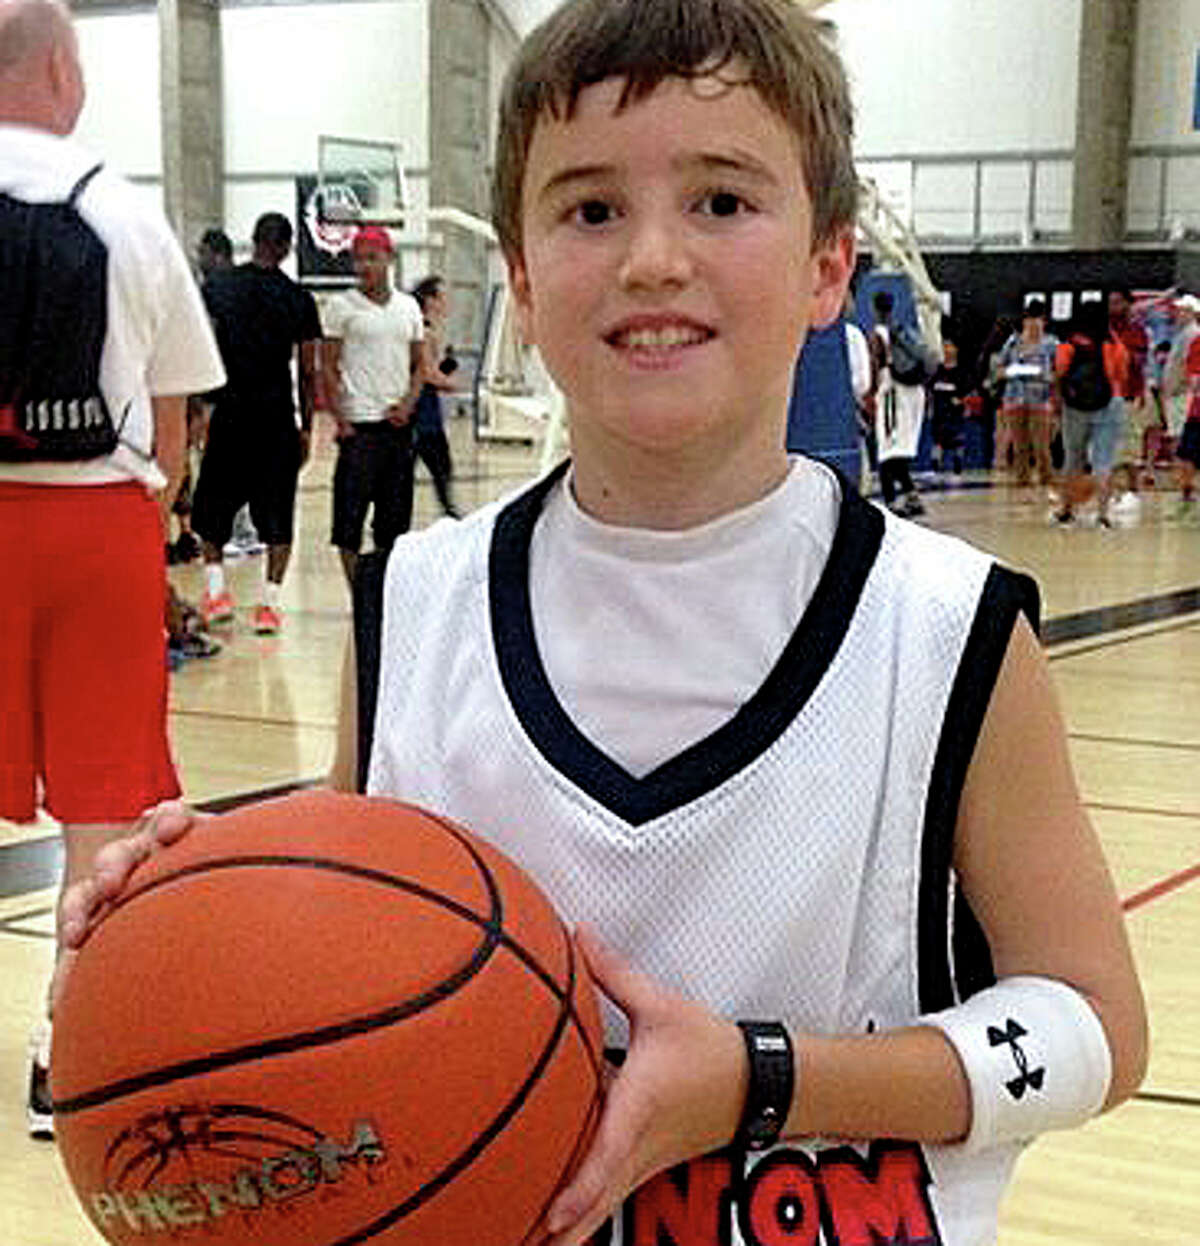 The Adam Greenlee Foundation is helping to organize a campaign to make automated external defibrillators available at all of the town's school athletics facilitie, as well as portable AEDs for Westport students on the road. In 2014, Adam Greenlee Jr., pictured, then a sixth-grader at Bedford Middle School, suffered a seizure and cardiac arrest, but was revived by staff who treated him with an AED and cardio-pulmonary resuscitation before he was taken to a hospital.